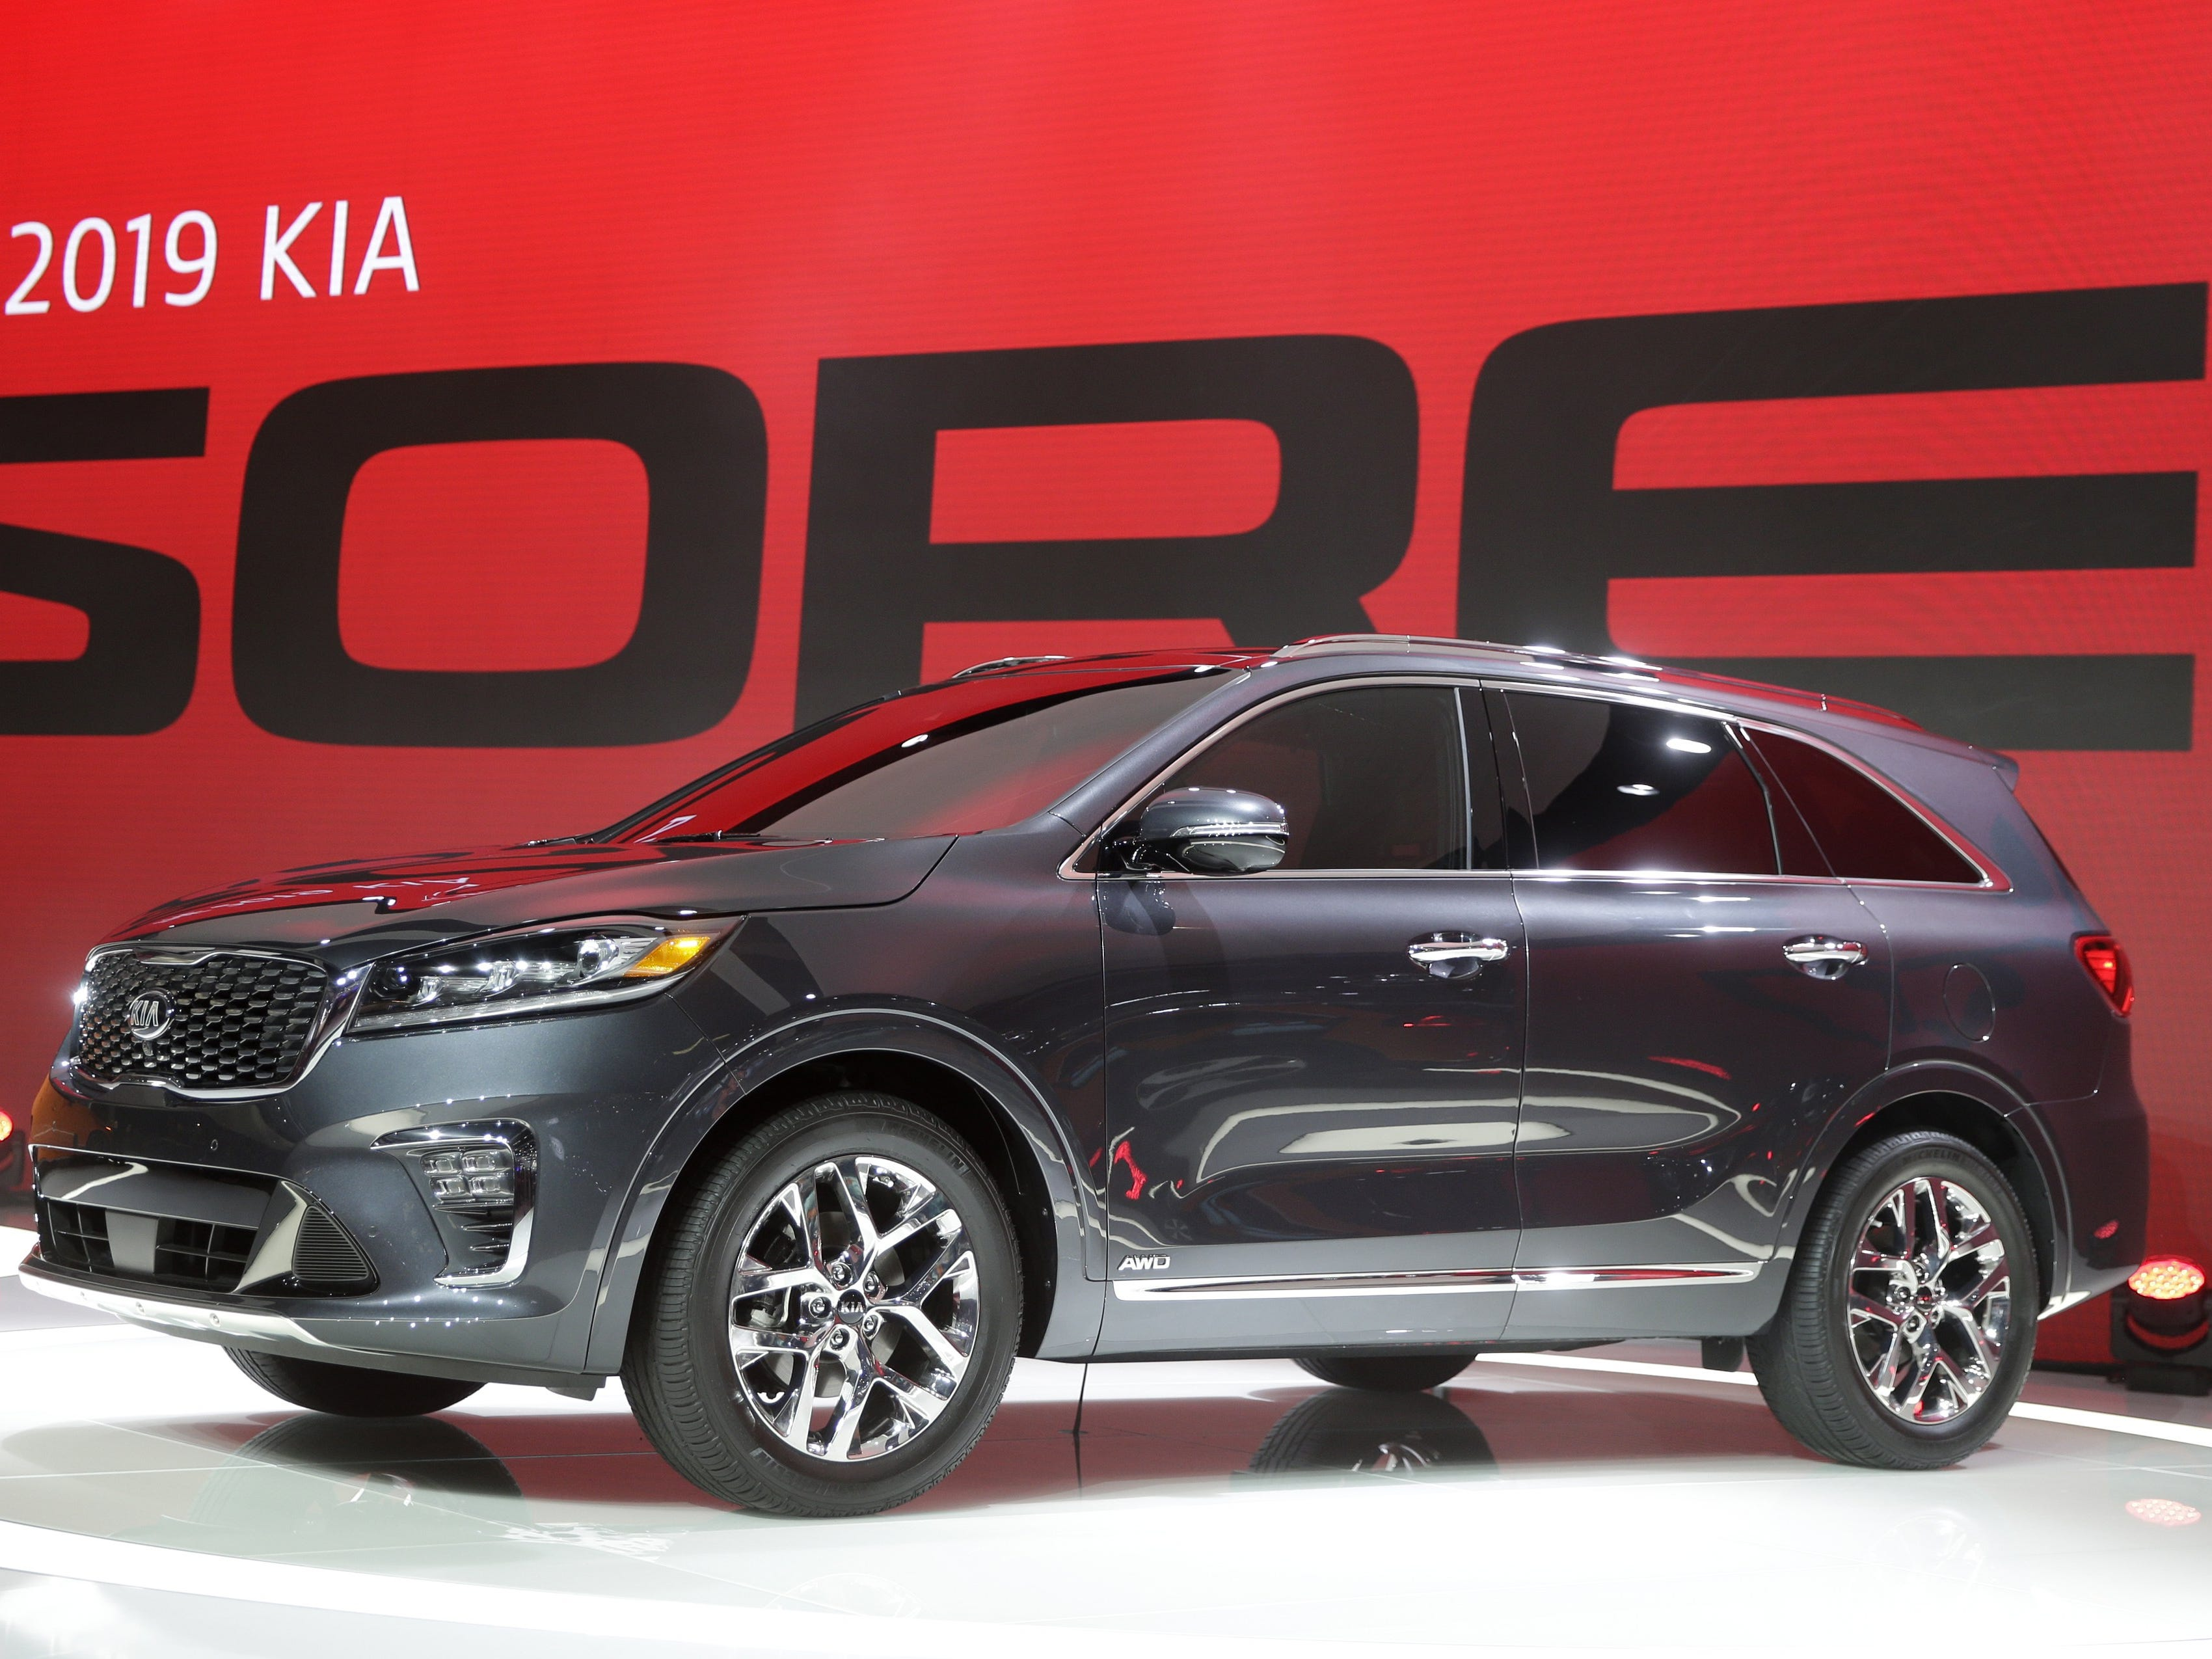 Well down the list at 71st, South Korea's Kia has a brand valuation of $7 billion, up 4 percent.